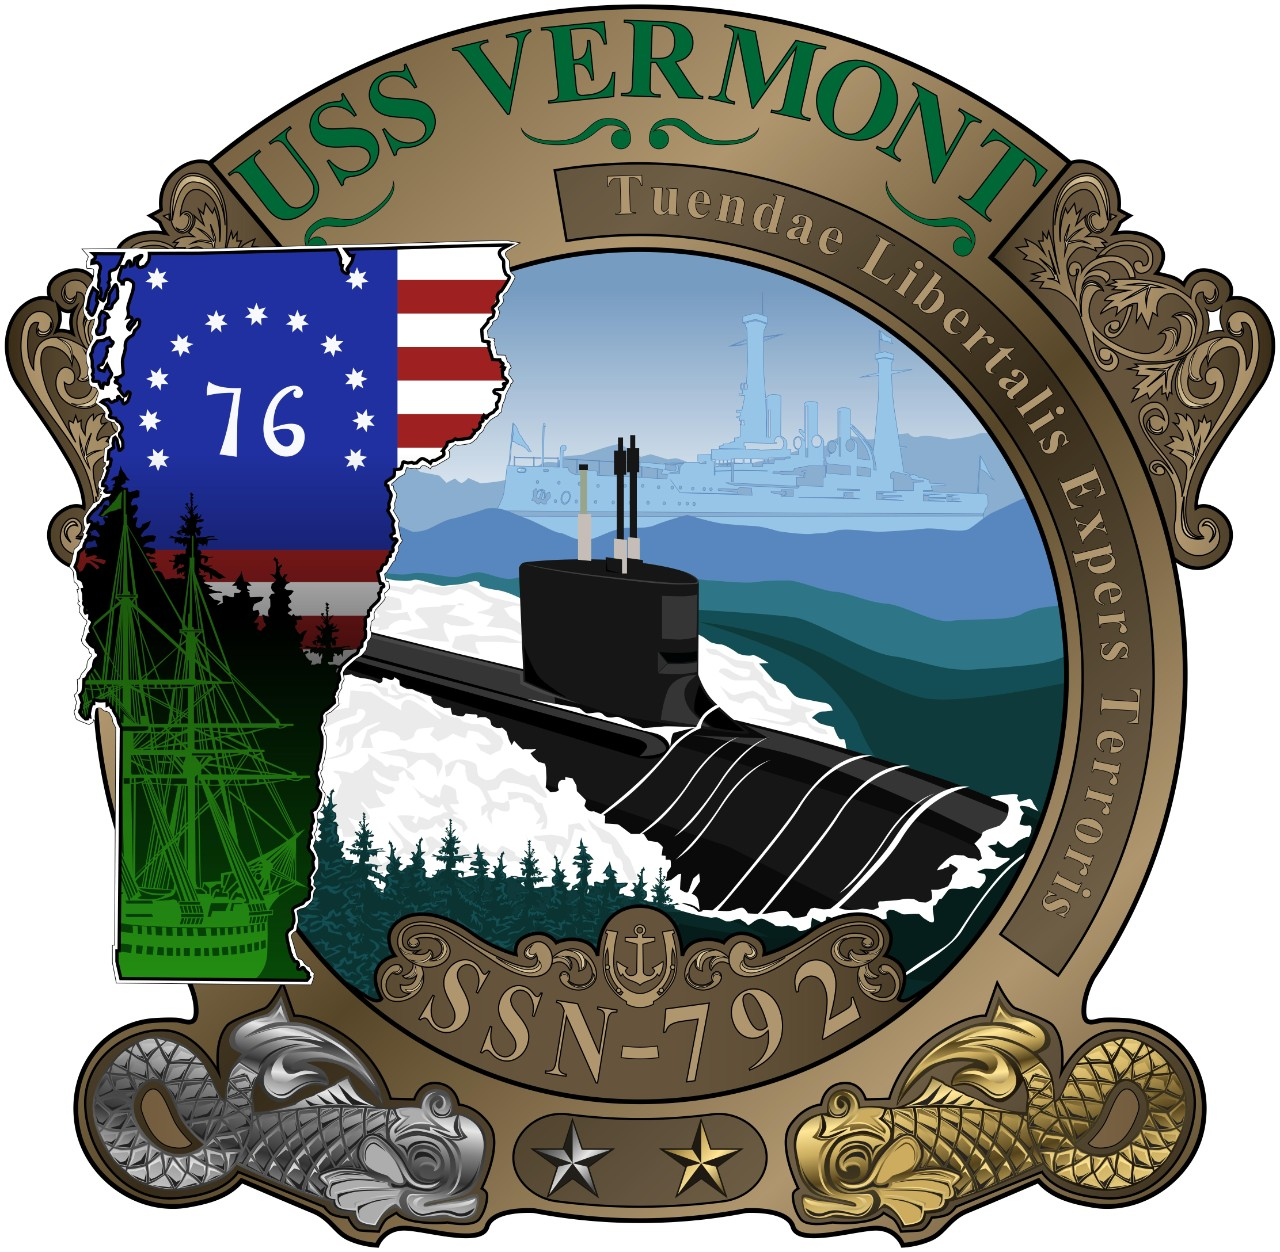 <p>WASHINGTON (April 18, 2020) The official crest of the Virginia-class attack submarine USS Vermont (SSN 792). Vermont is the third U.S. Navy vessel to bear the name of the Green Mountain State and the first of the 10 Virginia-class Block IV submarines. (U.S. Navy graphic/Released)</p>